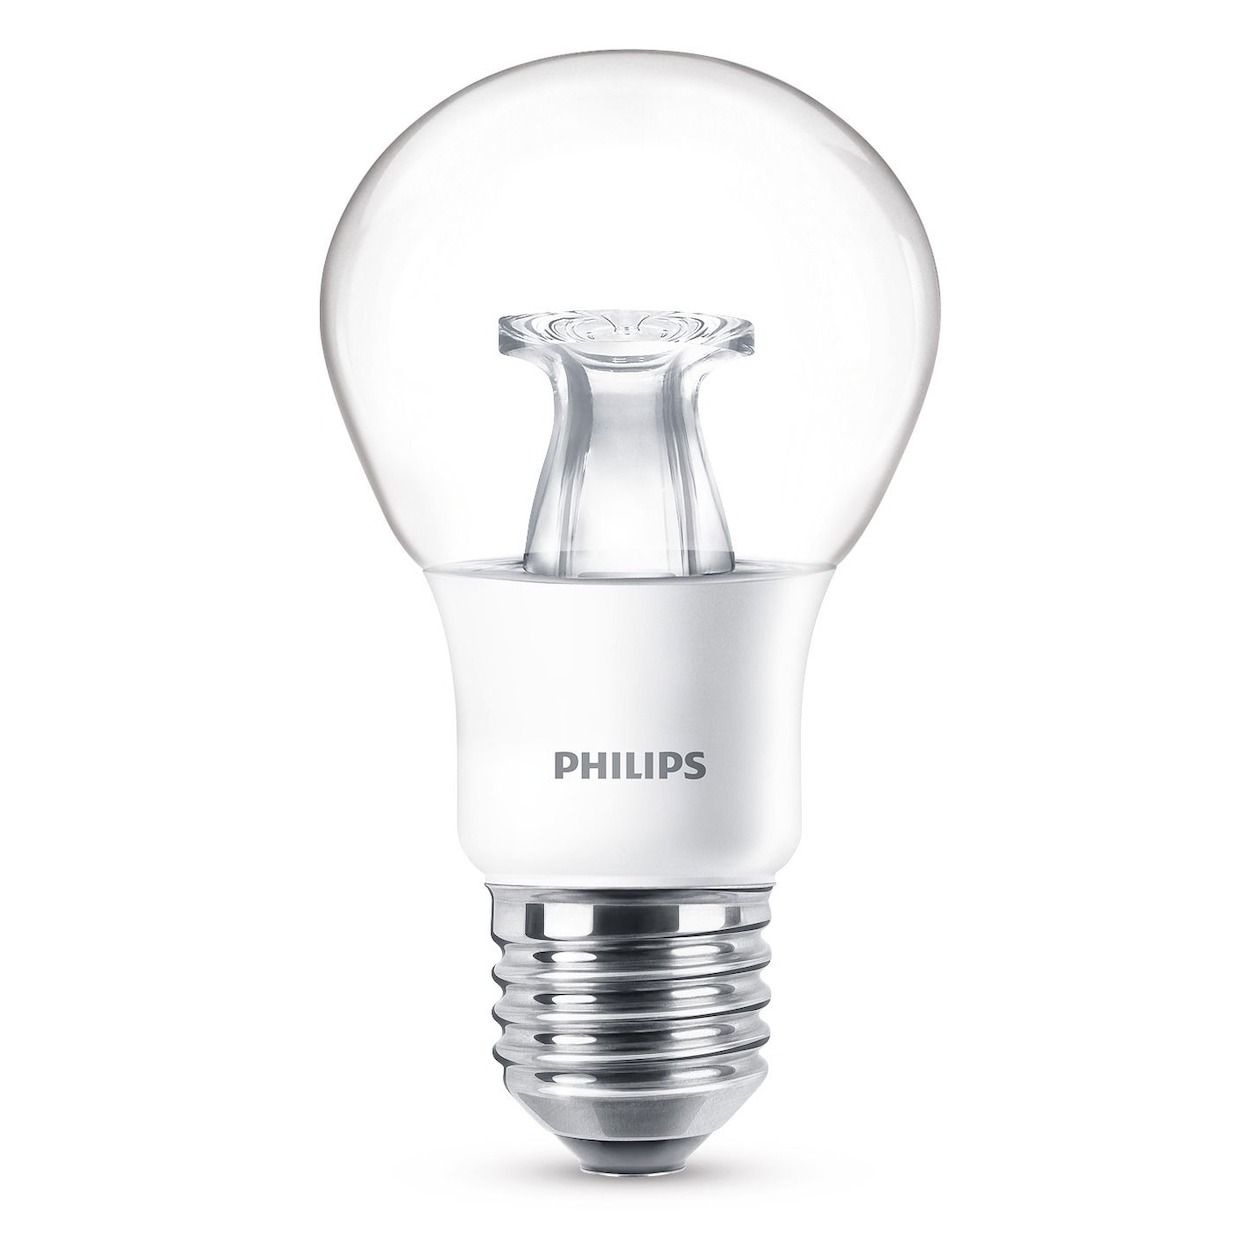 R7s Led Dimbaar Philips Philips Led Lamp E27 6w 470lm Peer Helder Dimbaar